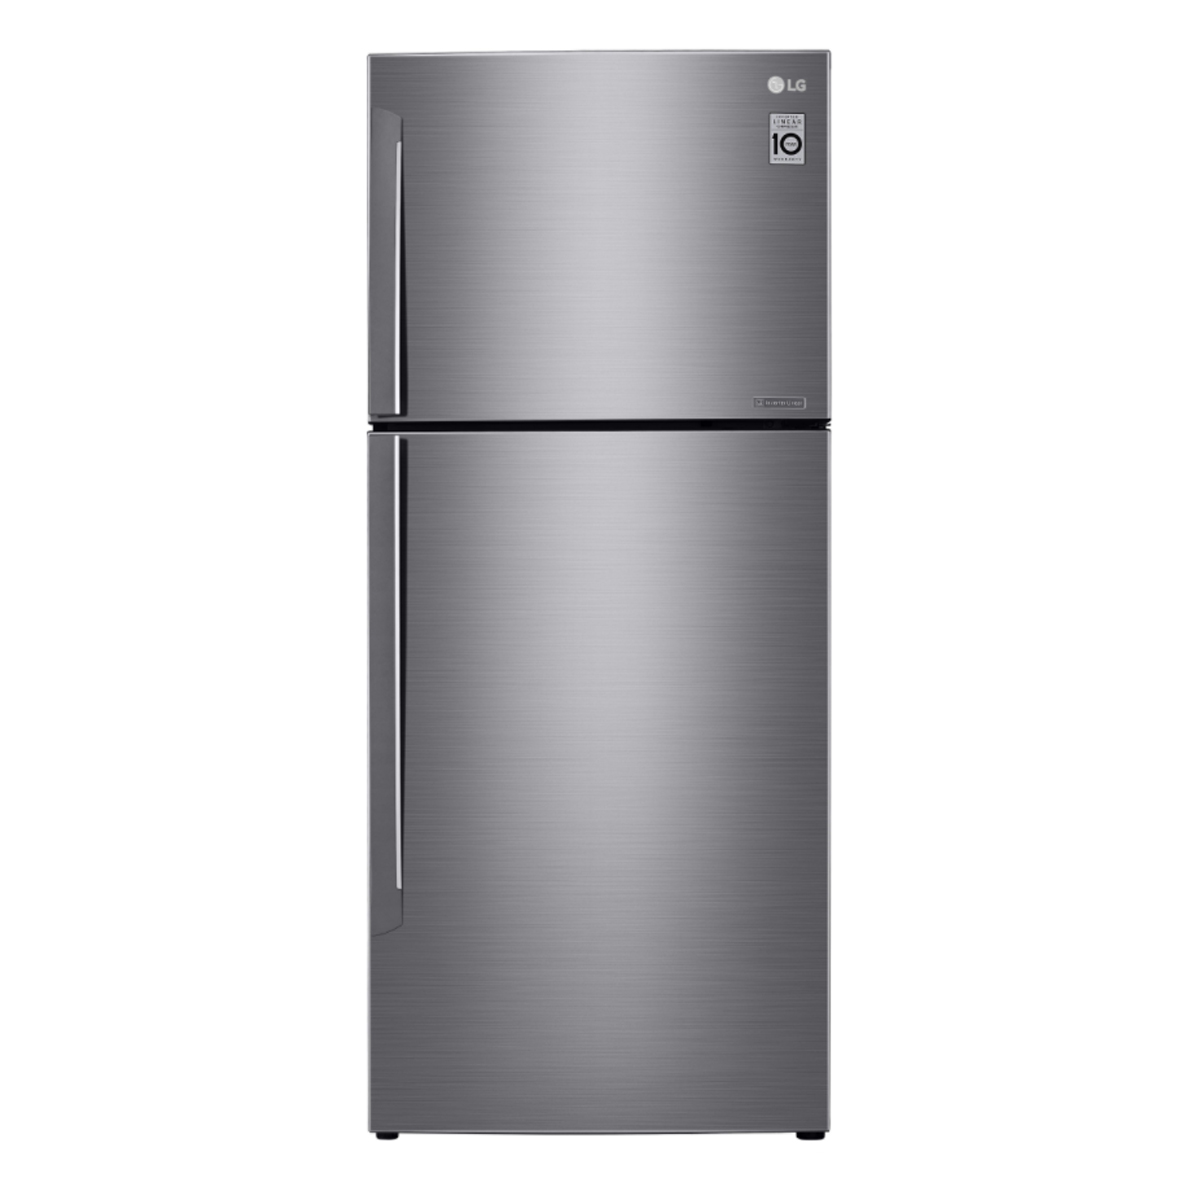 LG GT-442SDC 441Litres Top Mount Fridge with Door Cooling 116803